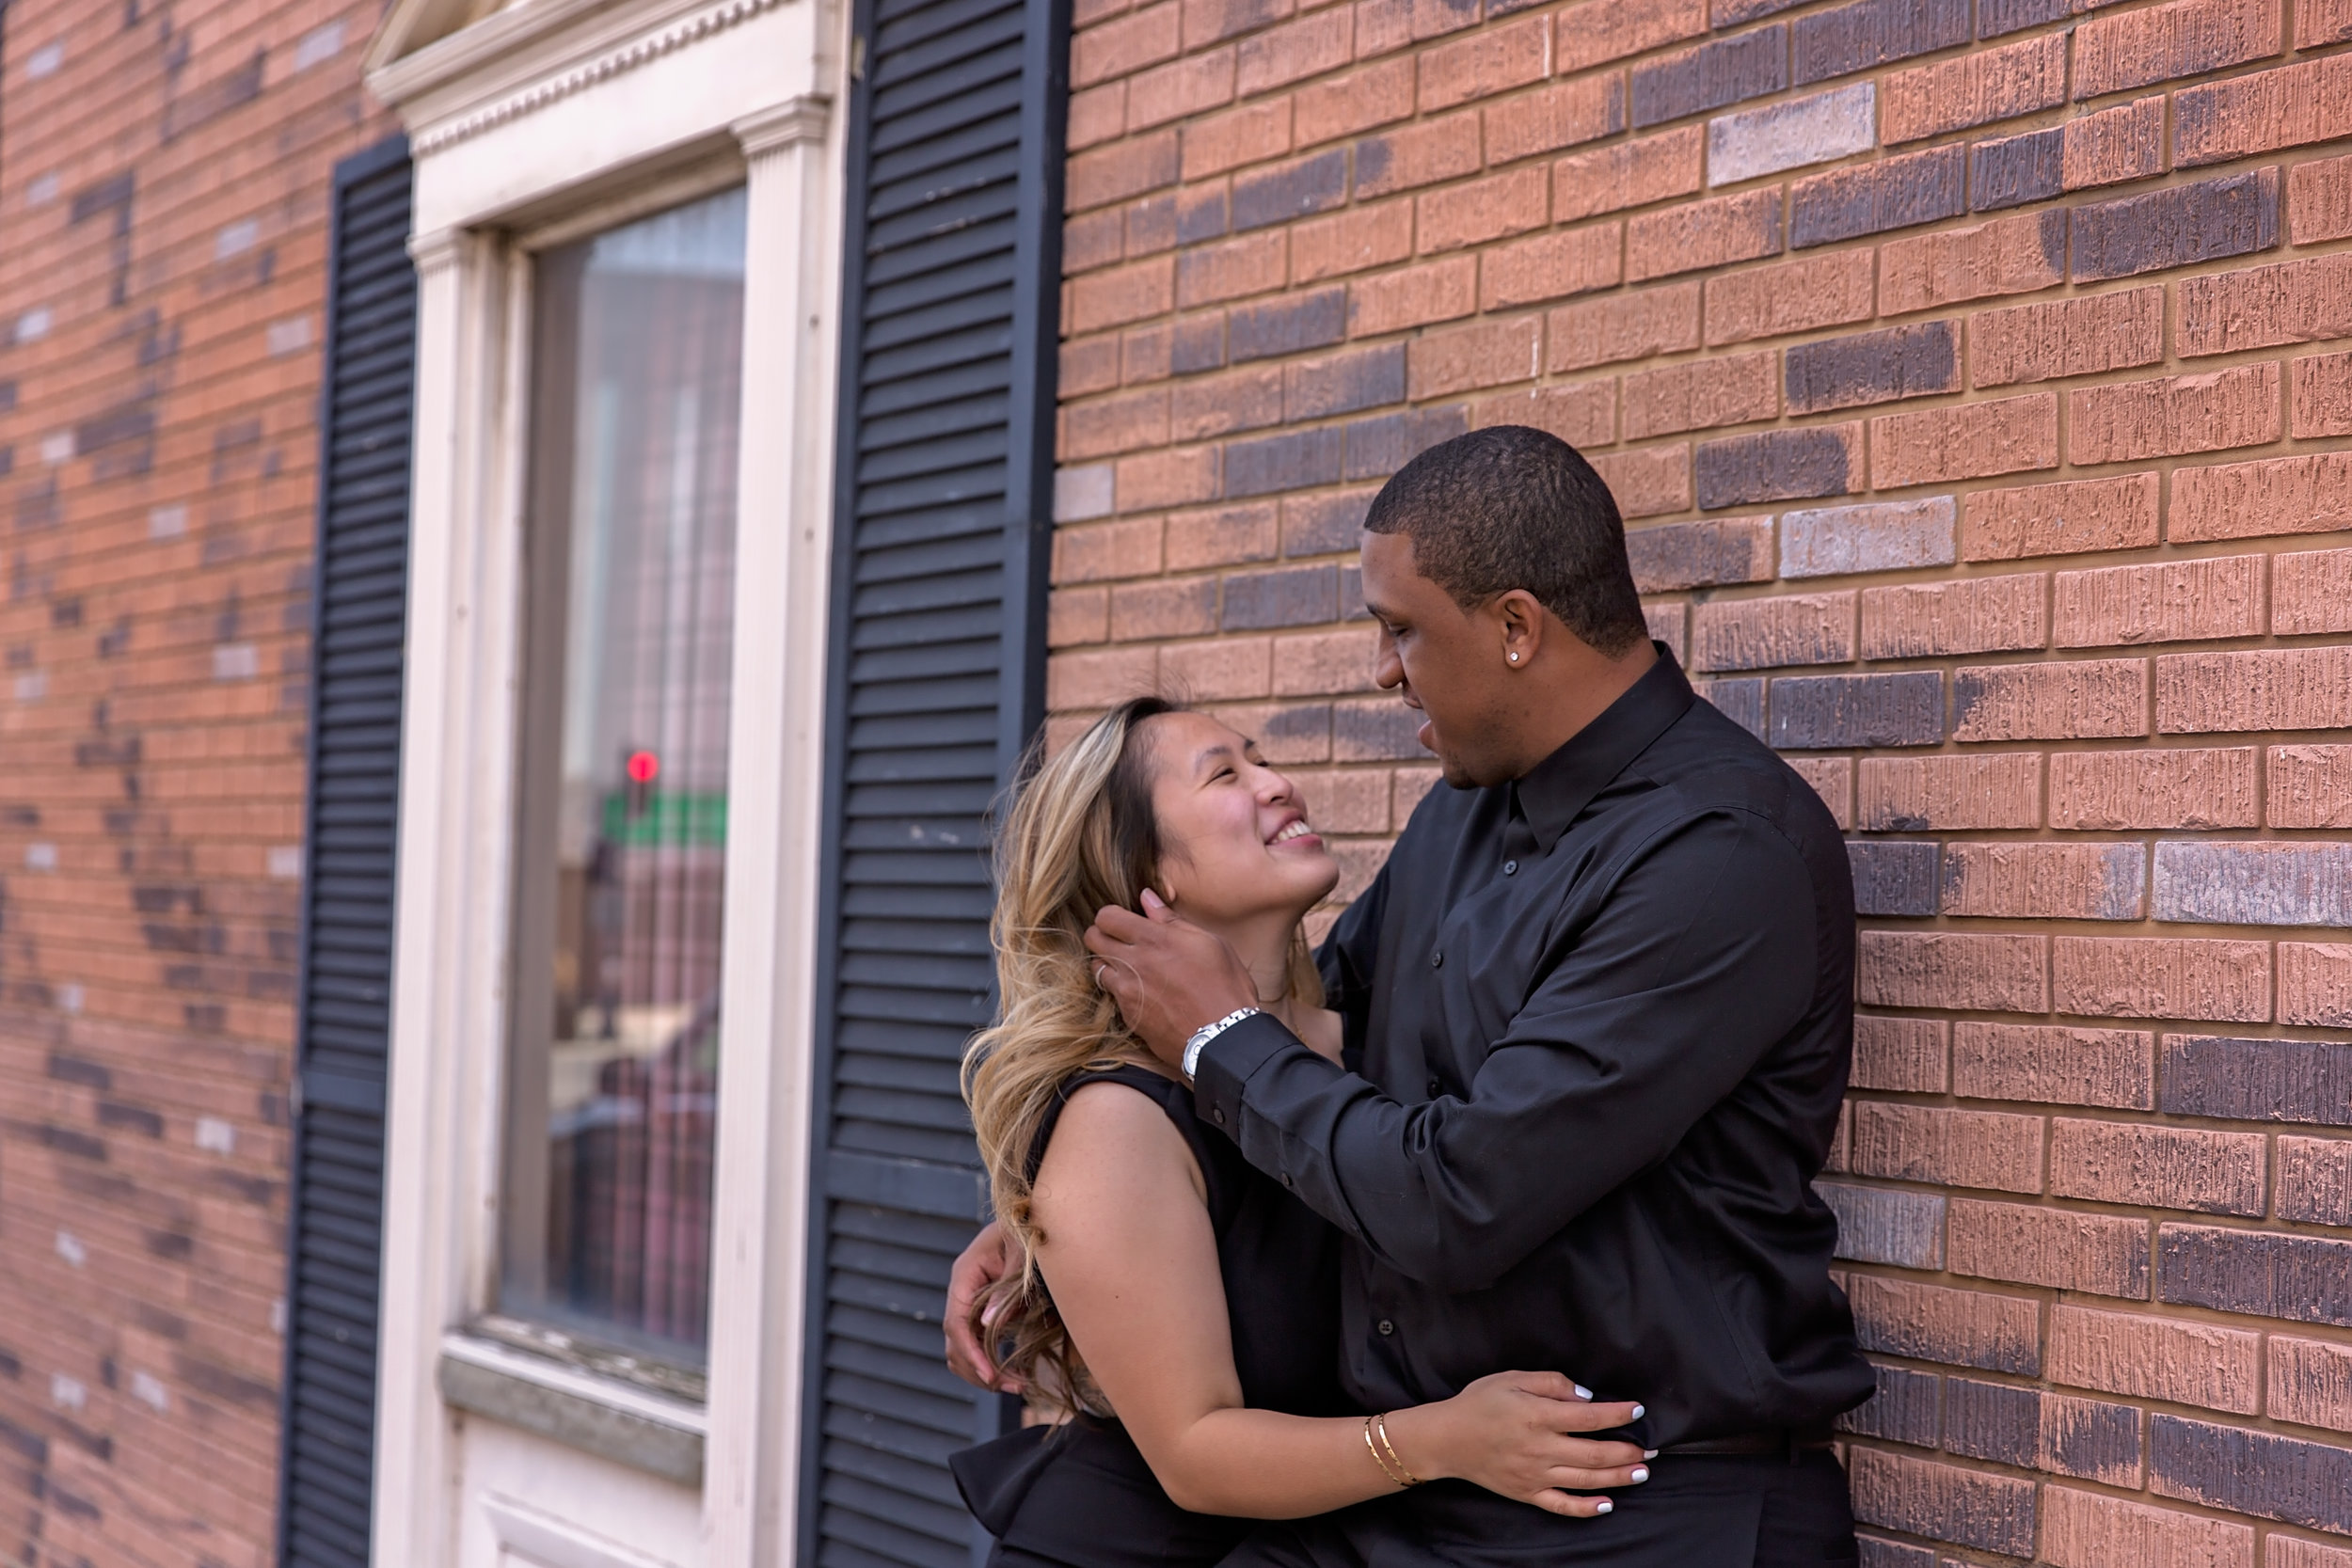 couple leaning up against brick wall embracing